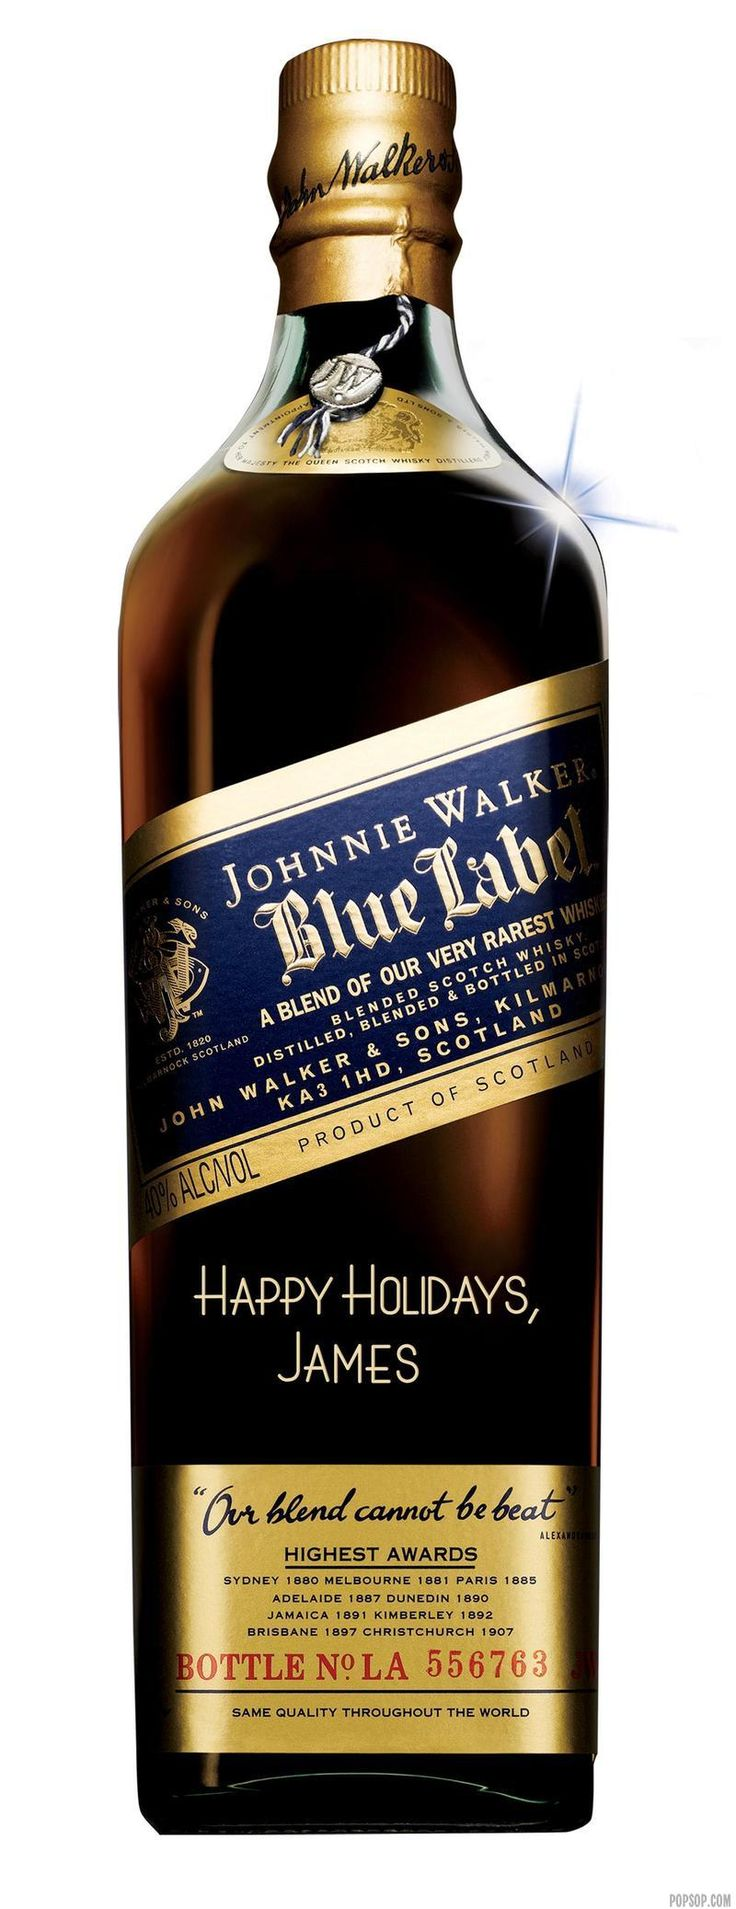 Johnnie Walker Blue Label Johnnie Walker Johnny Walker